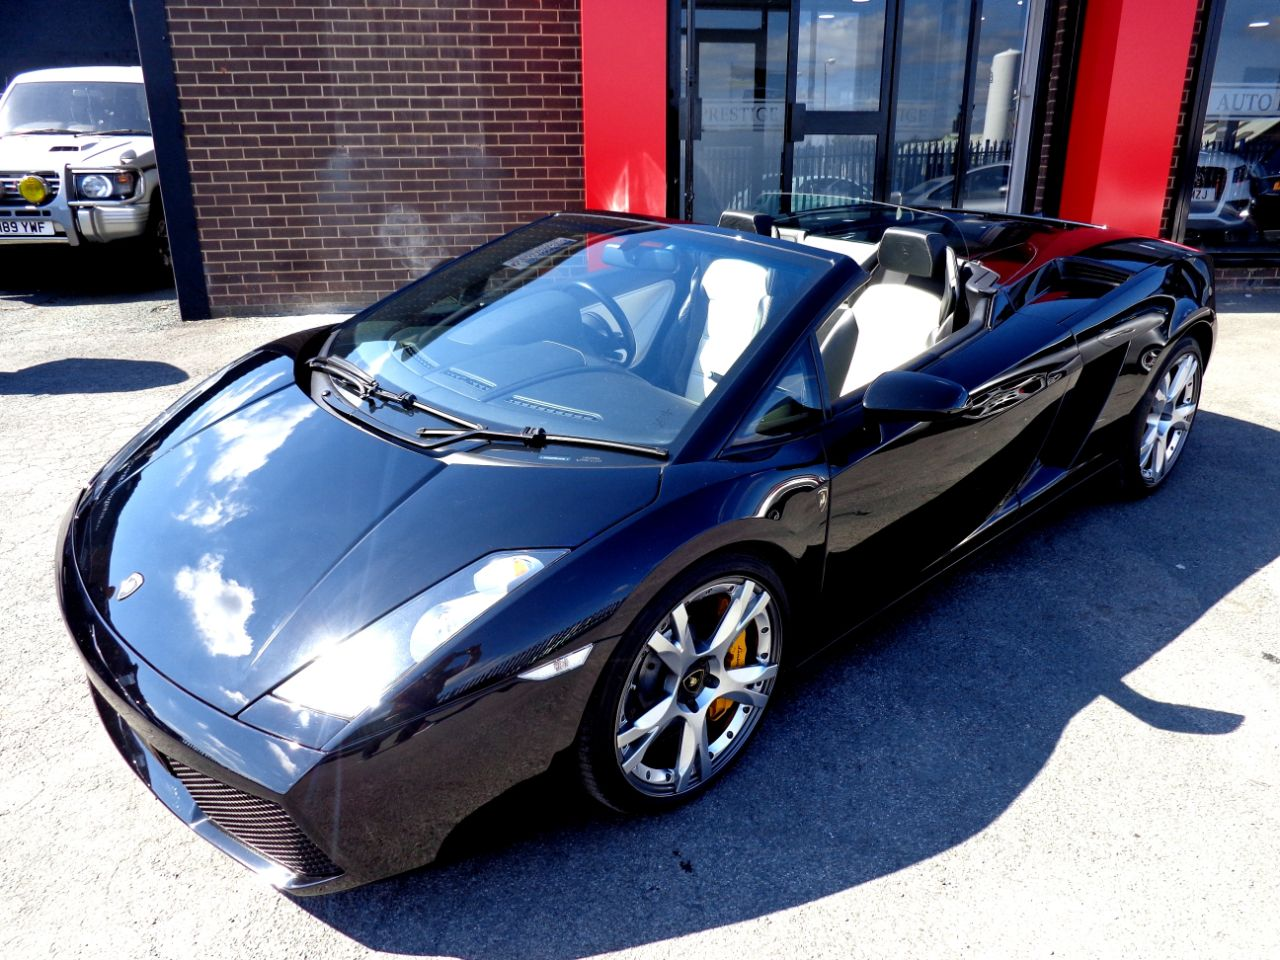 Lamborghini Gallardo 5.0 SPYDER E-GEAR WITH EXTRAS RARE GULLWING DOORS EXTENSIVE HISTORY FILE VERY HIGH SPEC Convertible Petrol Black